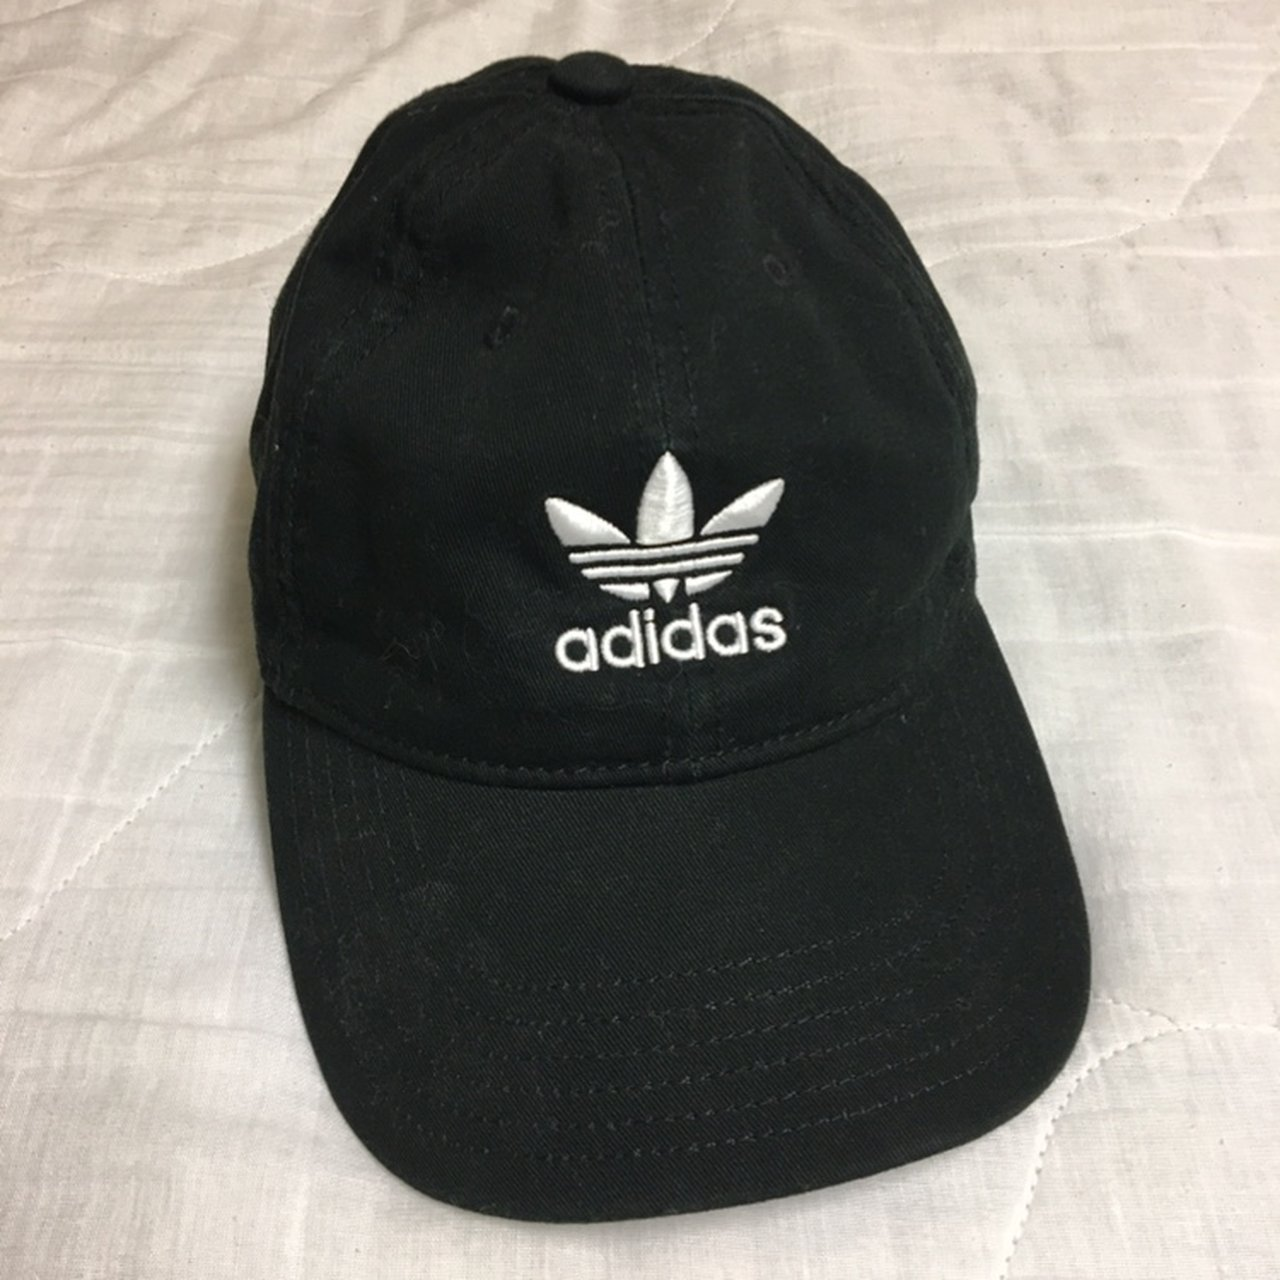 adidas hat - one size fits all adidas hat. worn once and i - Depop 1eb5fa5c9ee